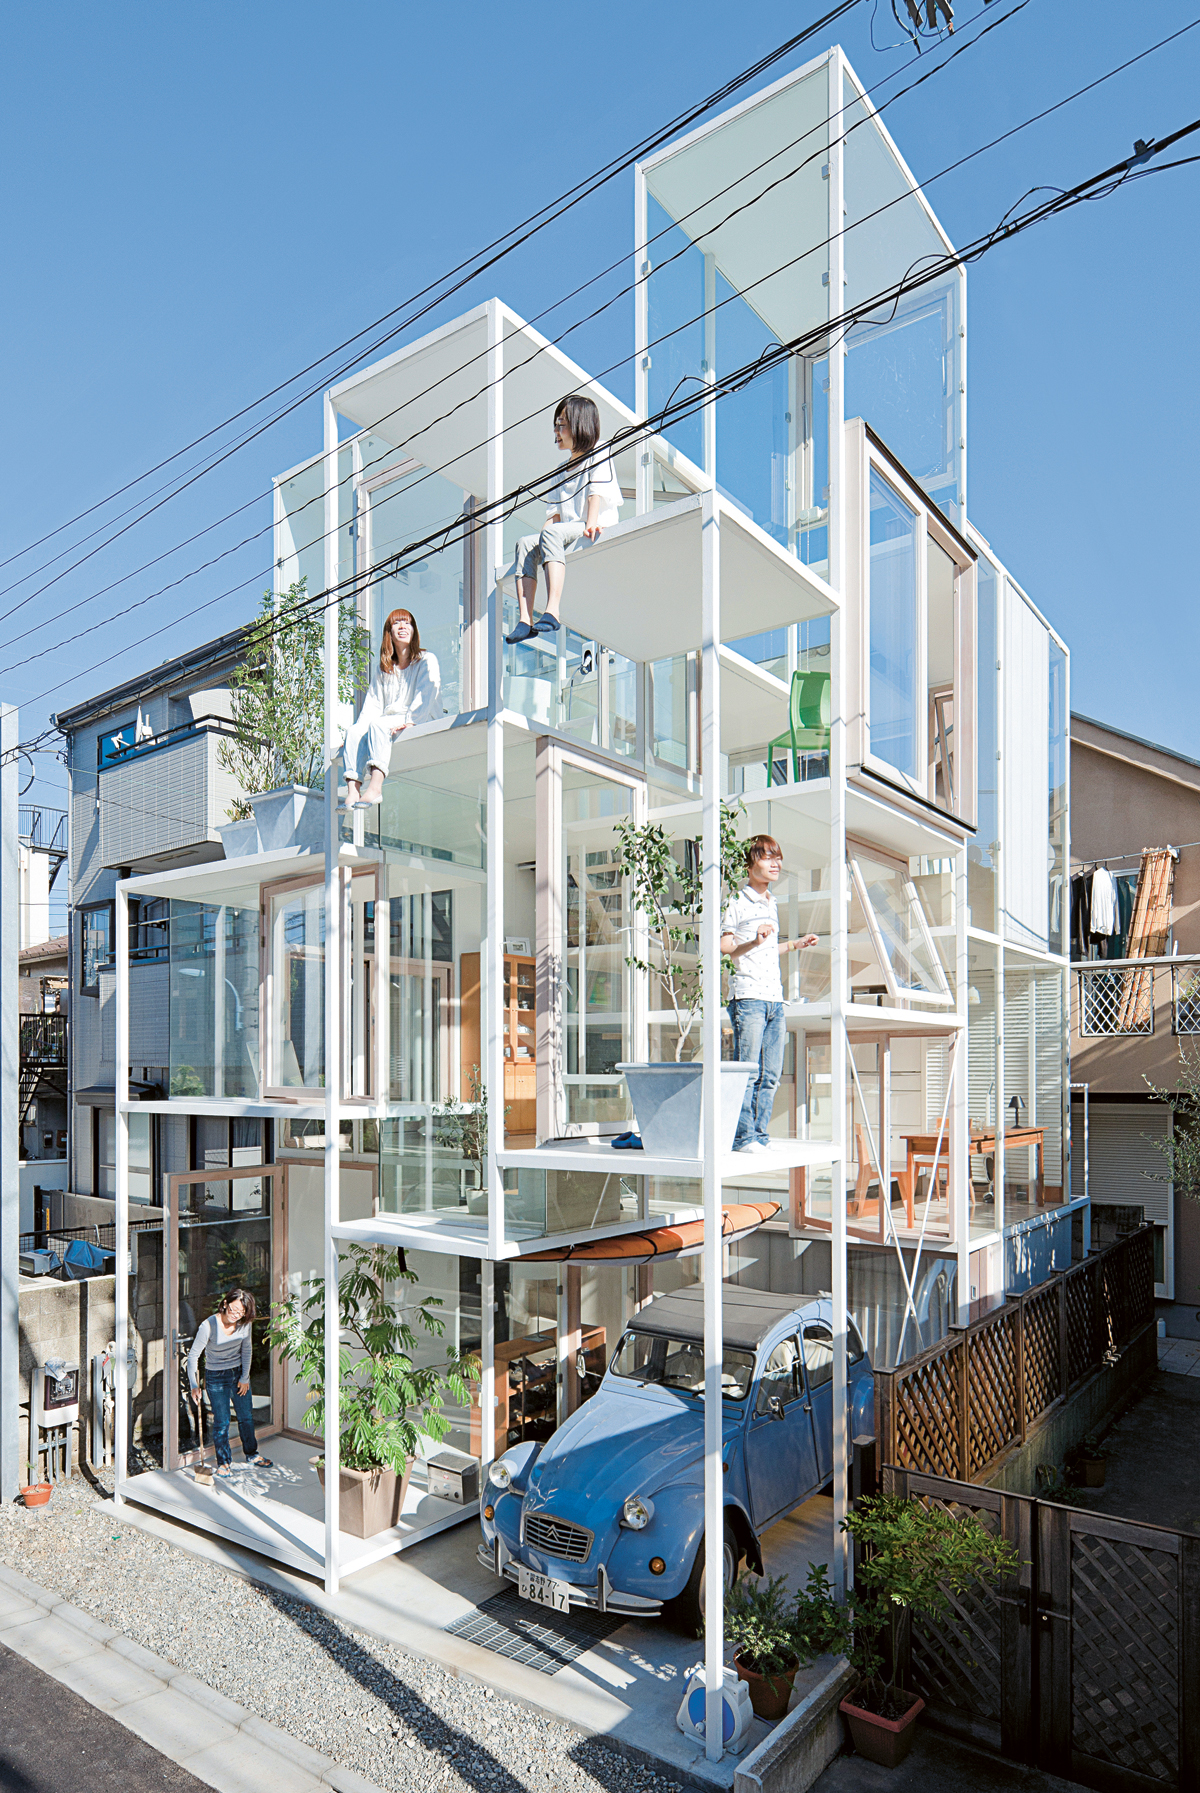 Tremendous Live Small Japanese Housing Design Creative Review Largest Home Design Picture Inspirations Pitcheantrous